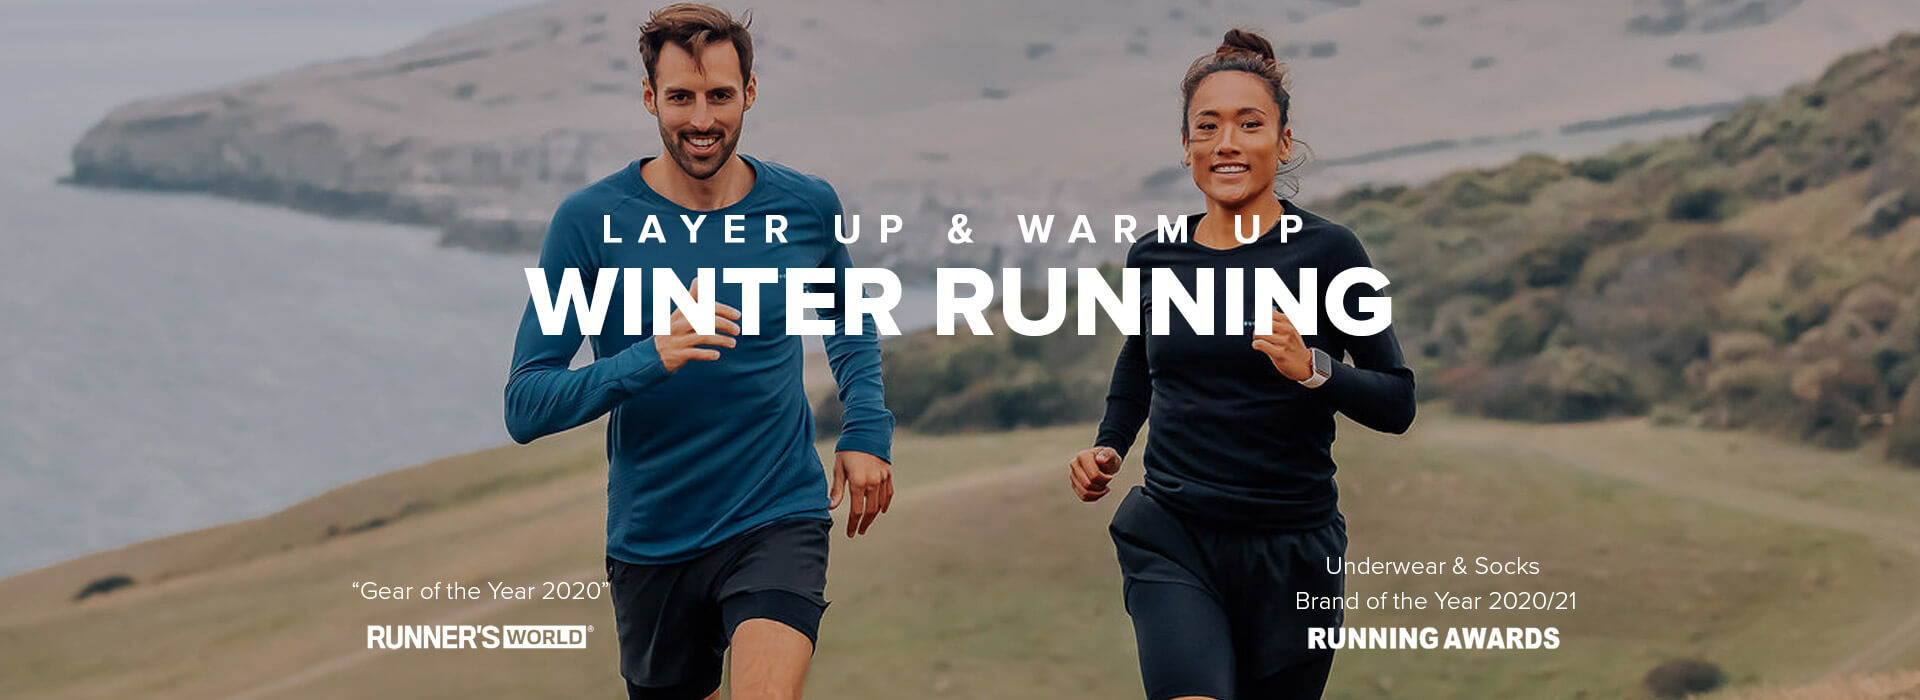 Layer Up & Warm Up - Winter Running